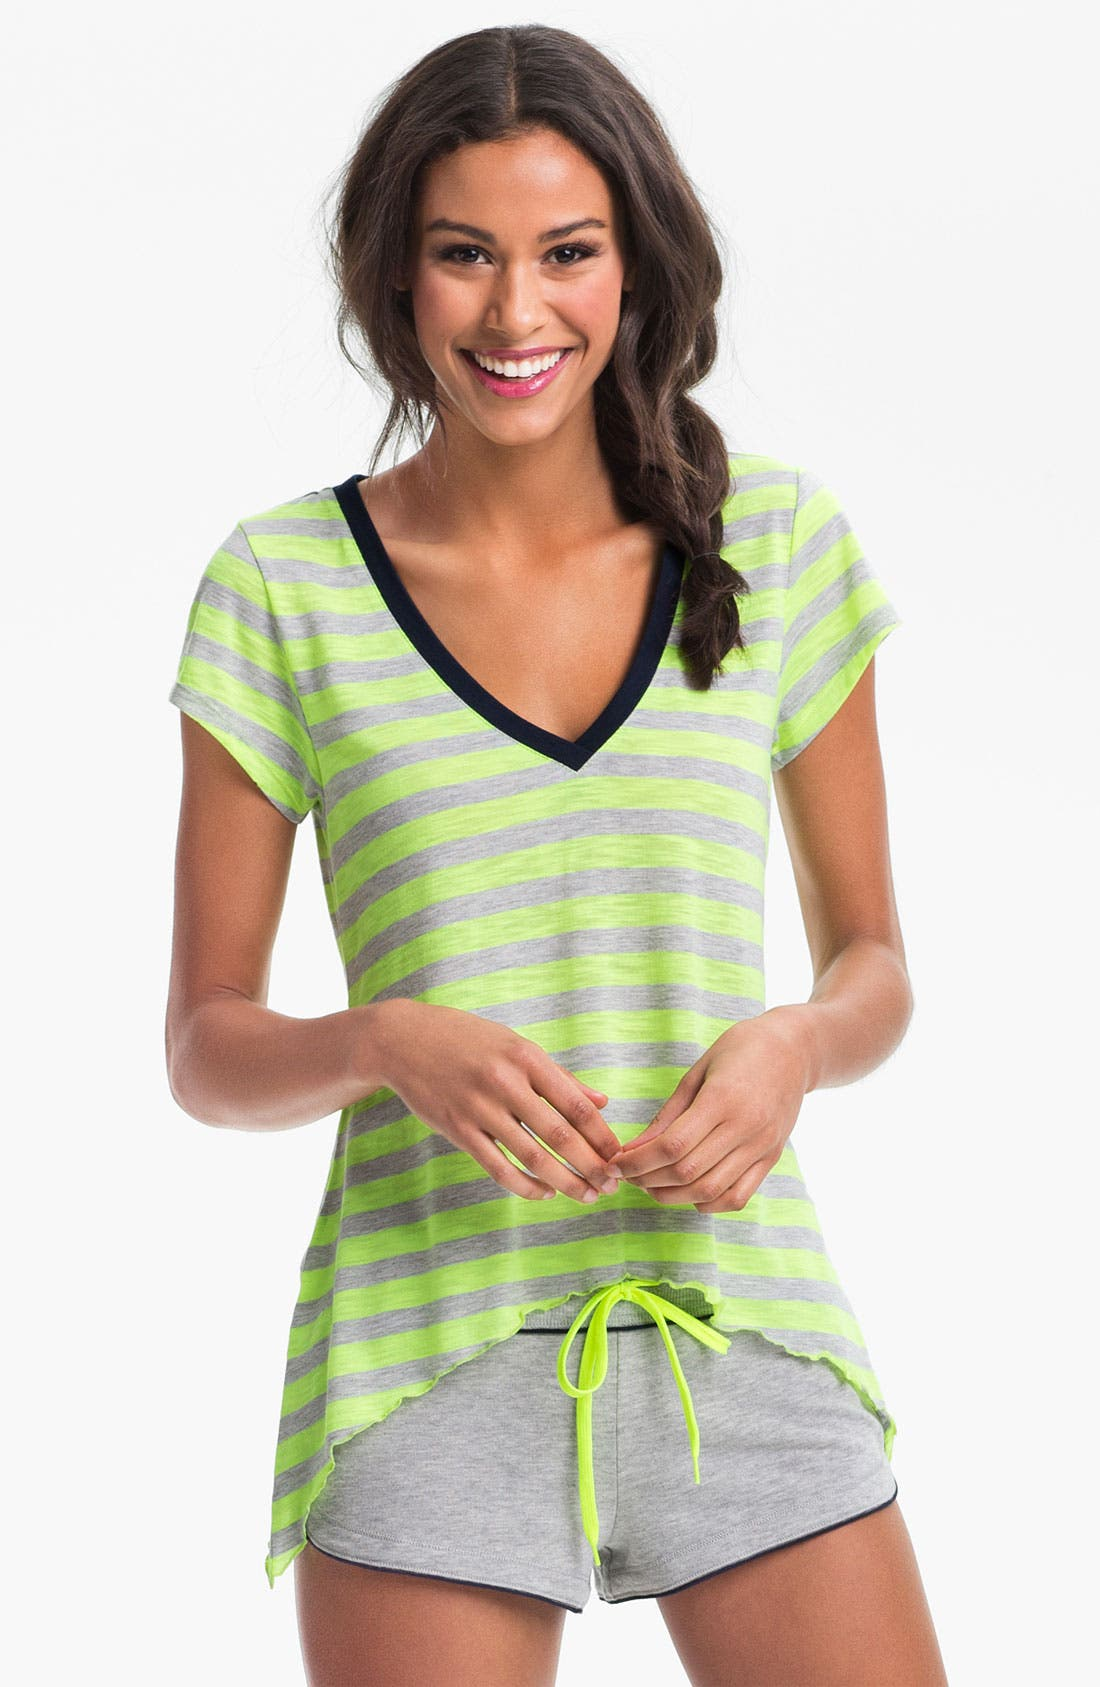 Alternate Image 1 Selected - Steve Madden 'Earn Your Stripes' Lounge Tee